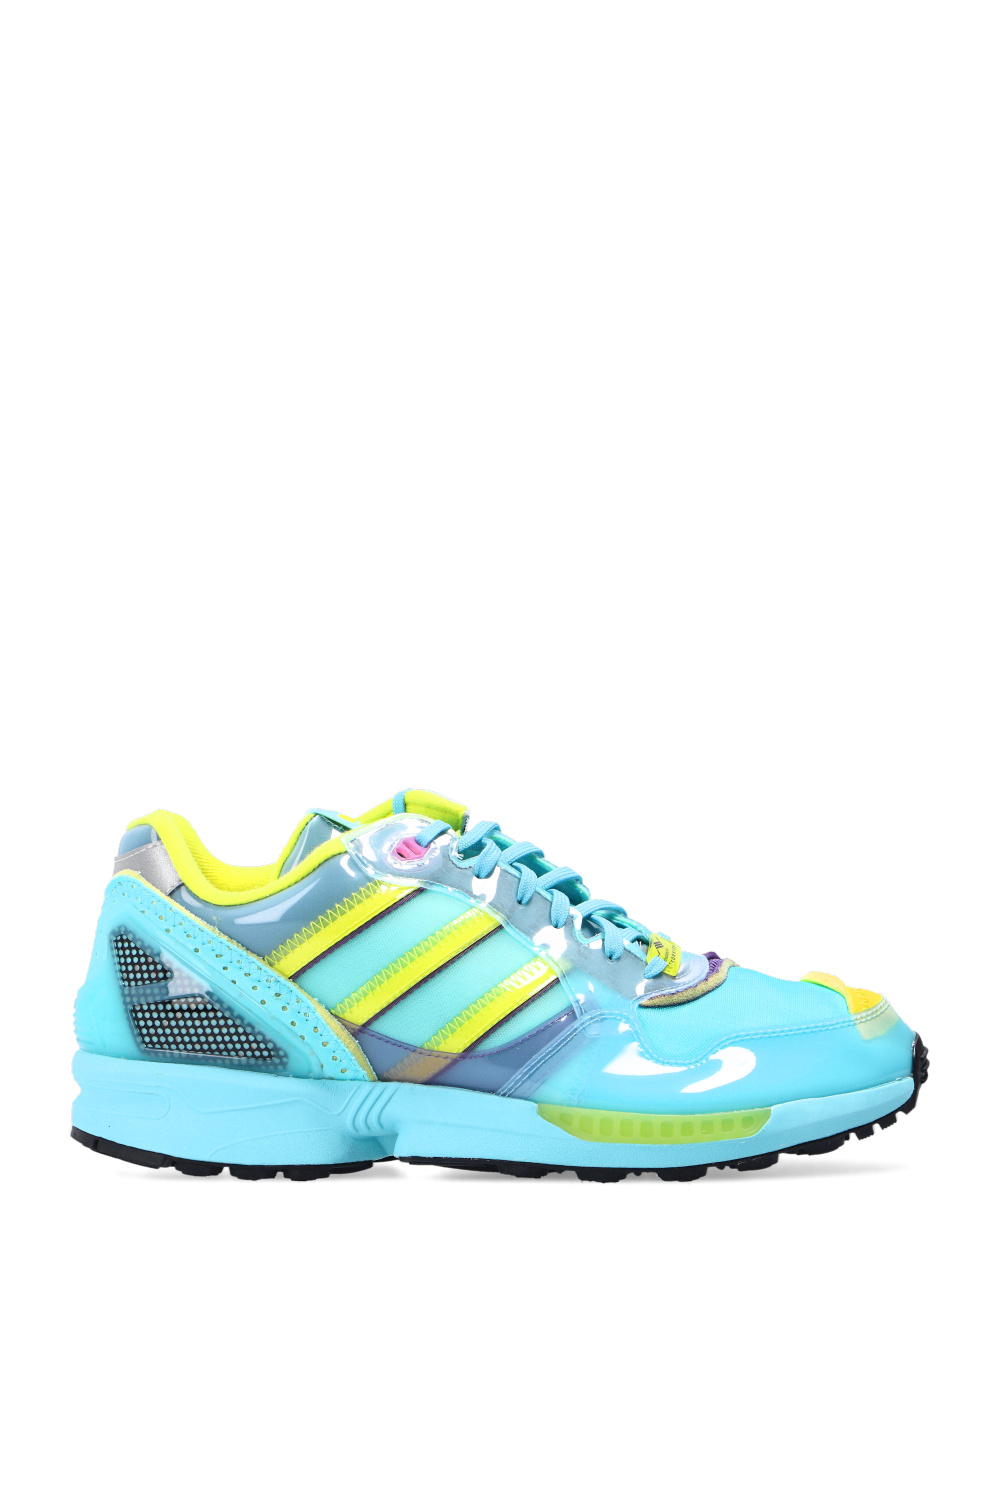 ADIDAS Originals 'ZX 6000 Inside Out' sneakers